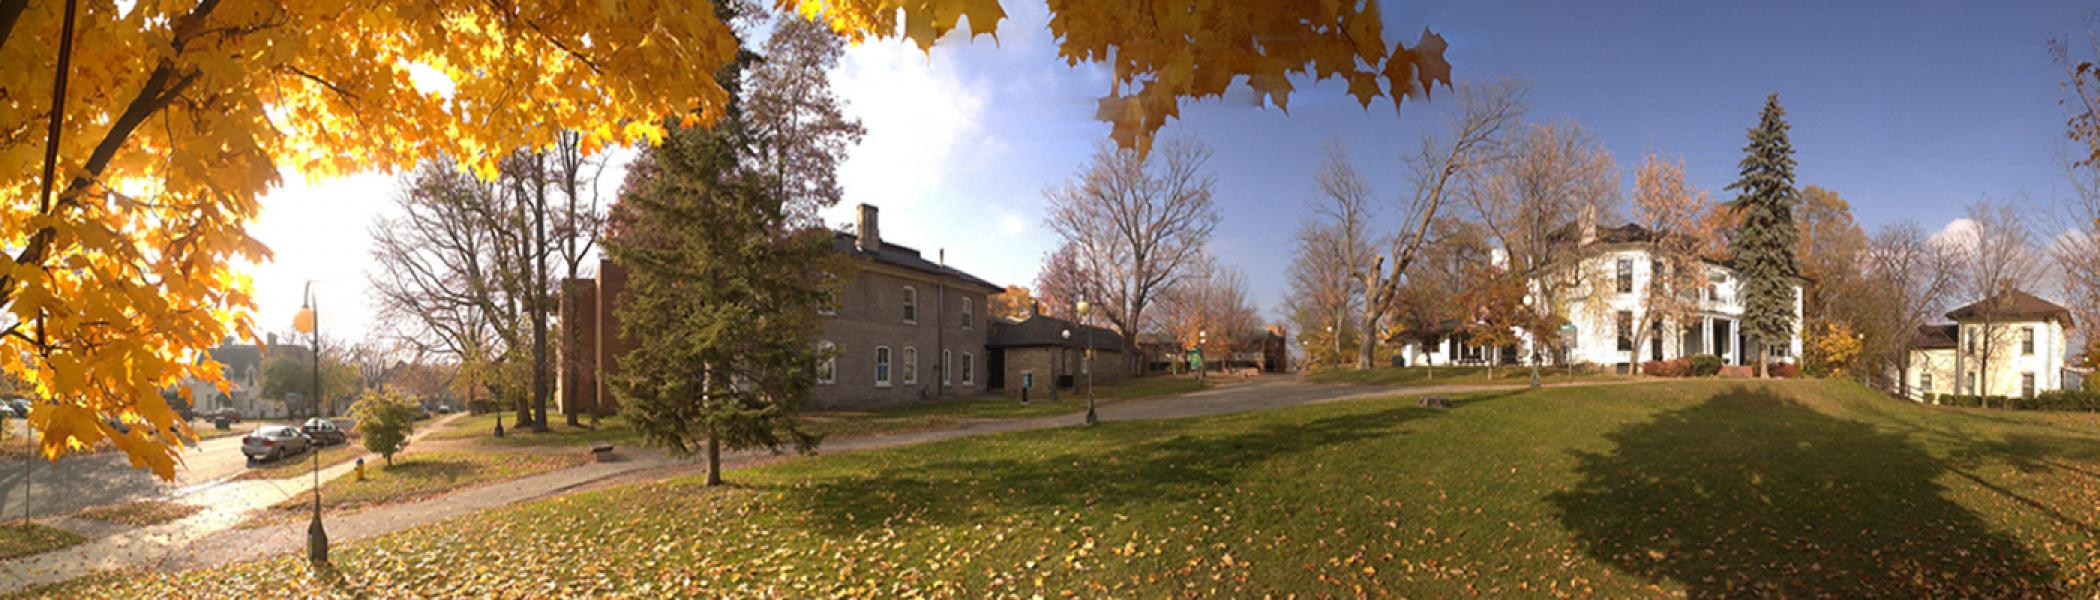 Panoramic view of Catharine Parr Traill College